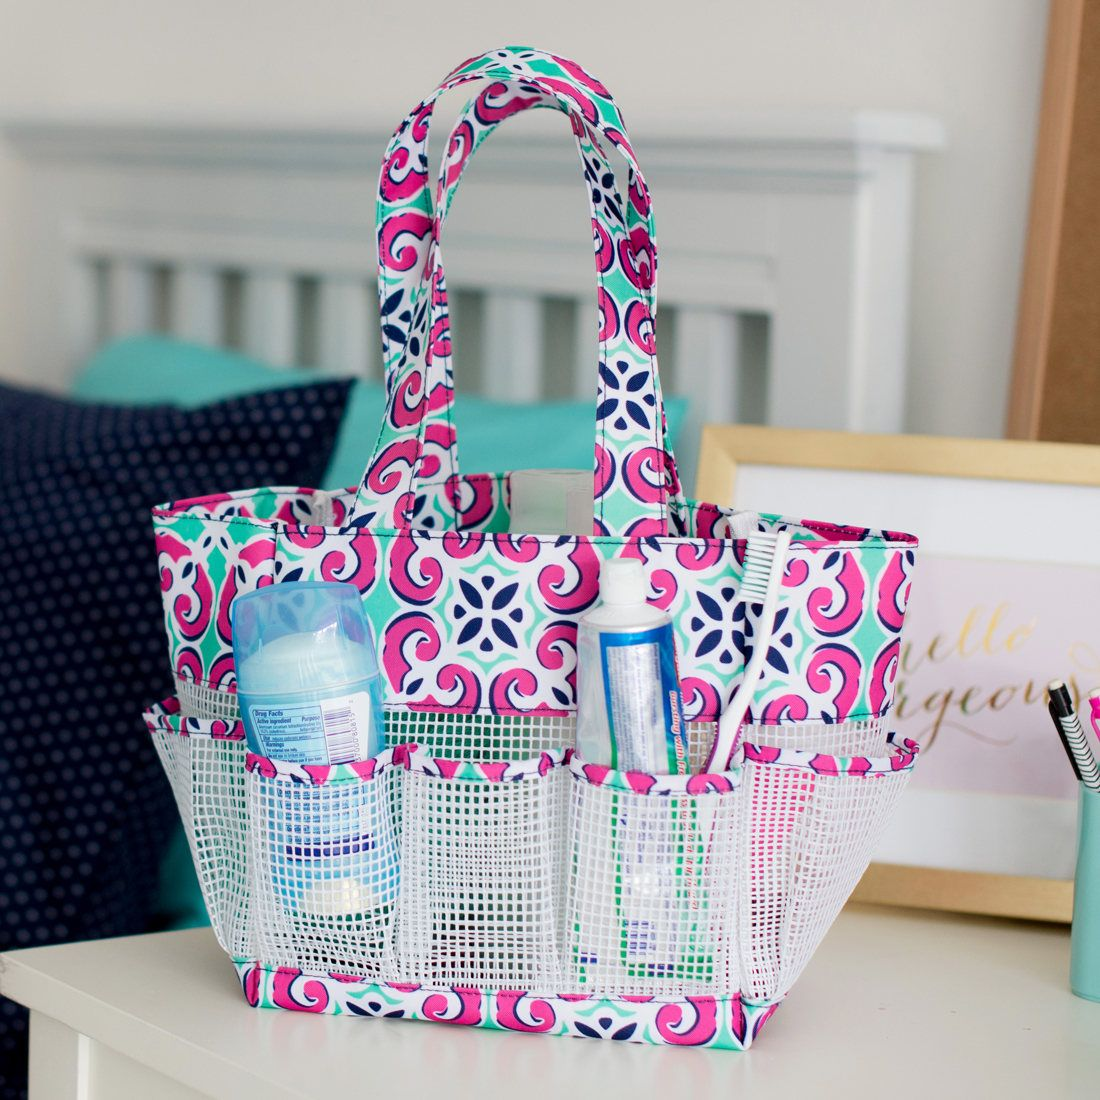 Mia Shower Caddy - Shower Caddy - Girl\'s Shower Caddy - Personalized ...